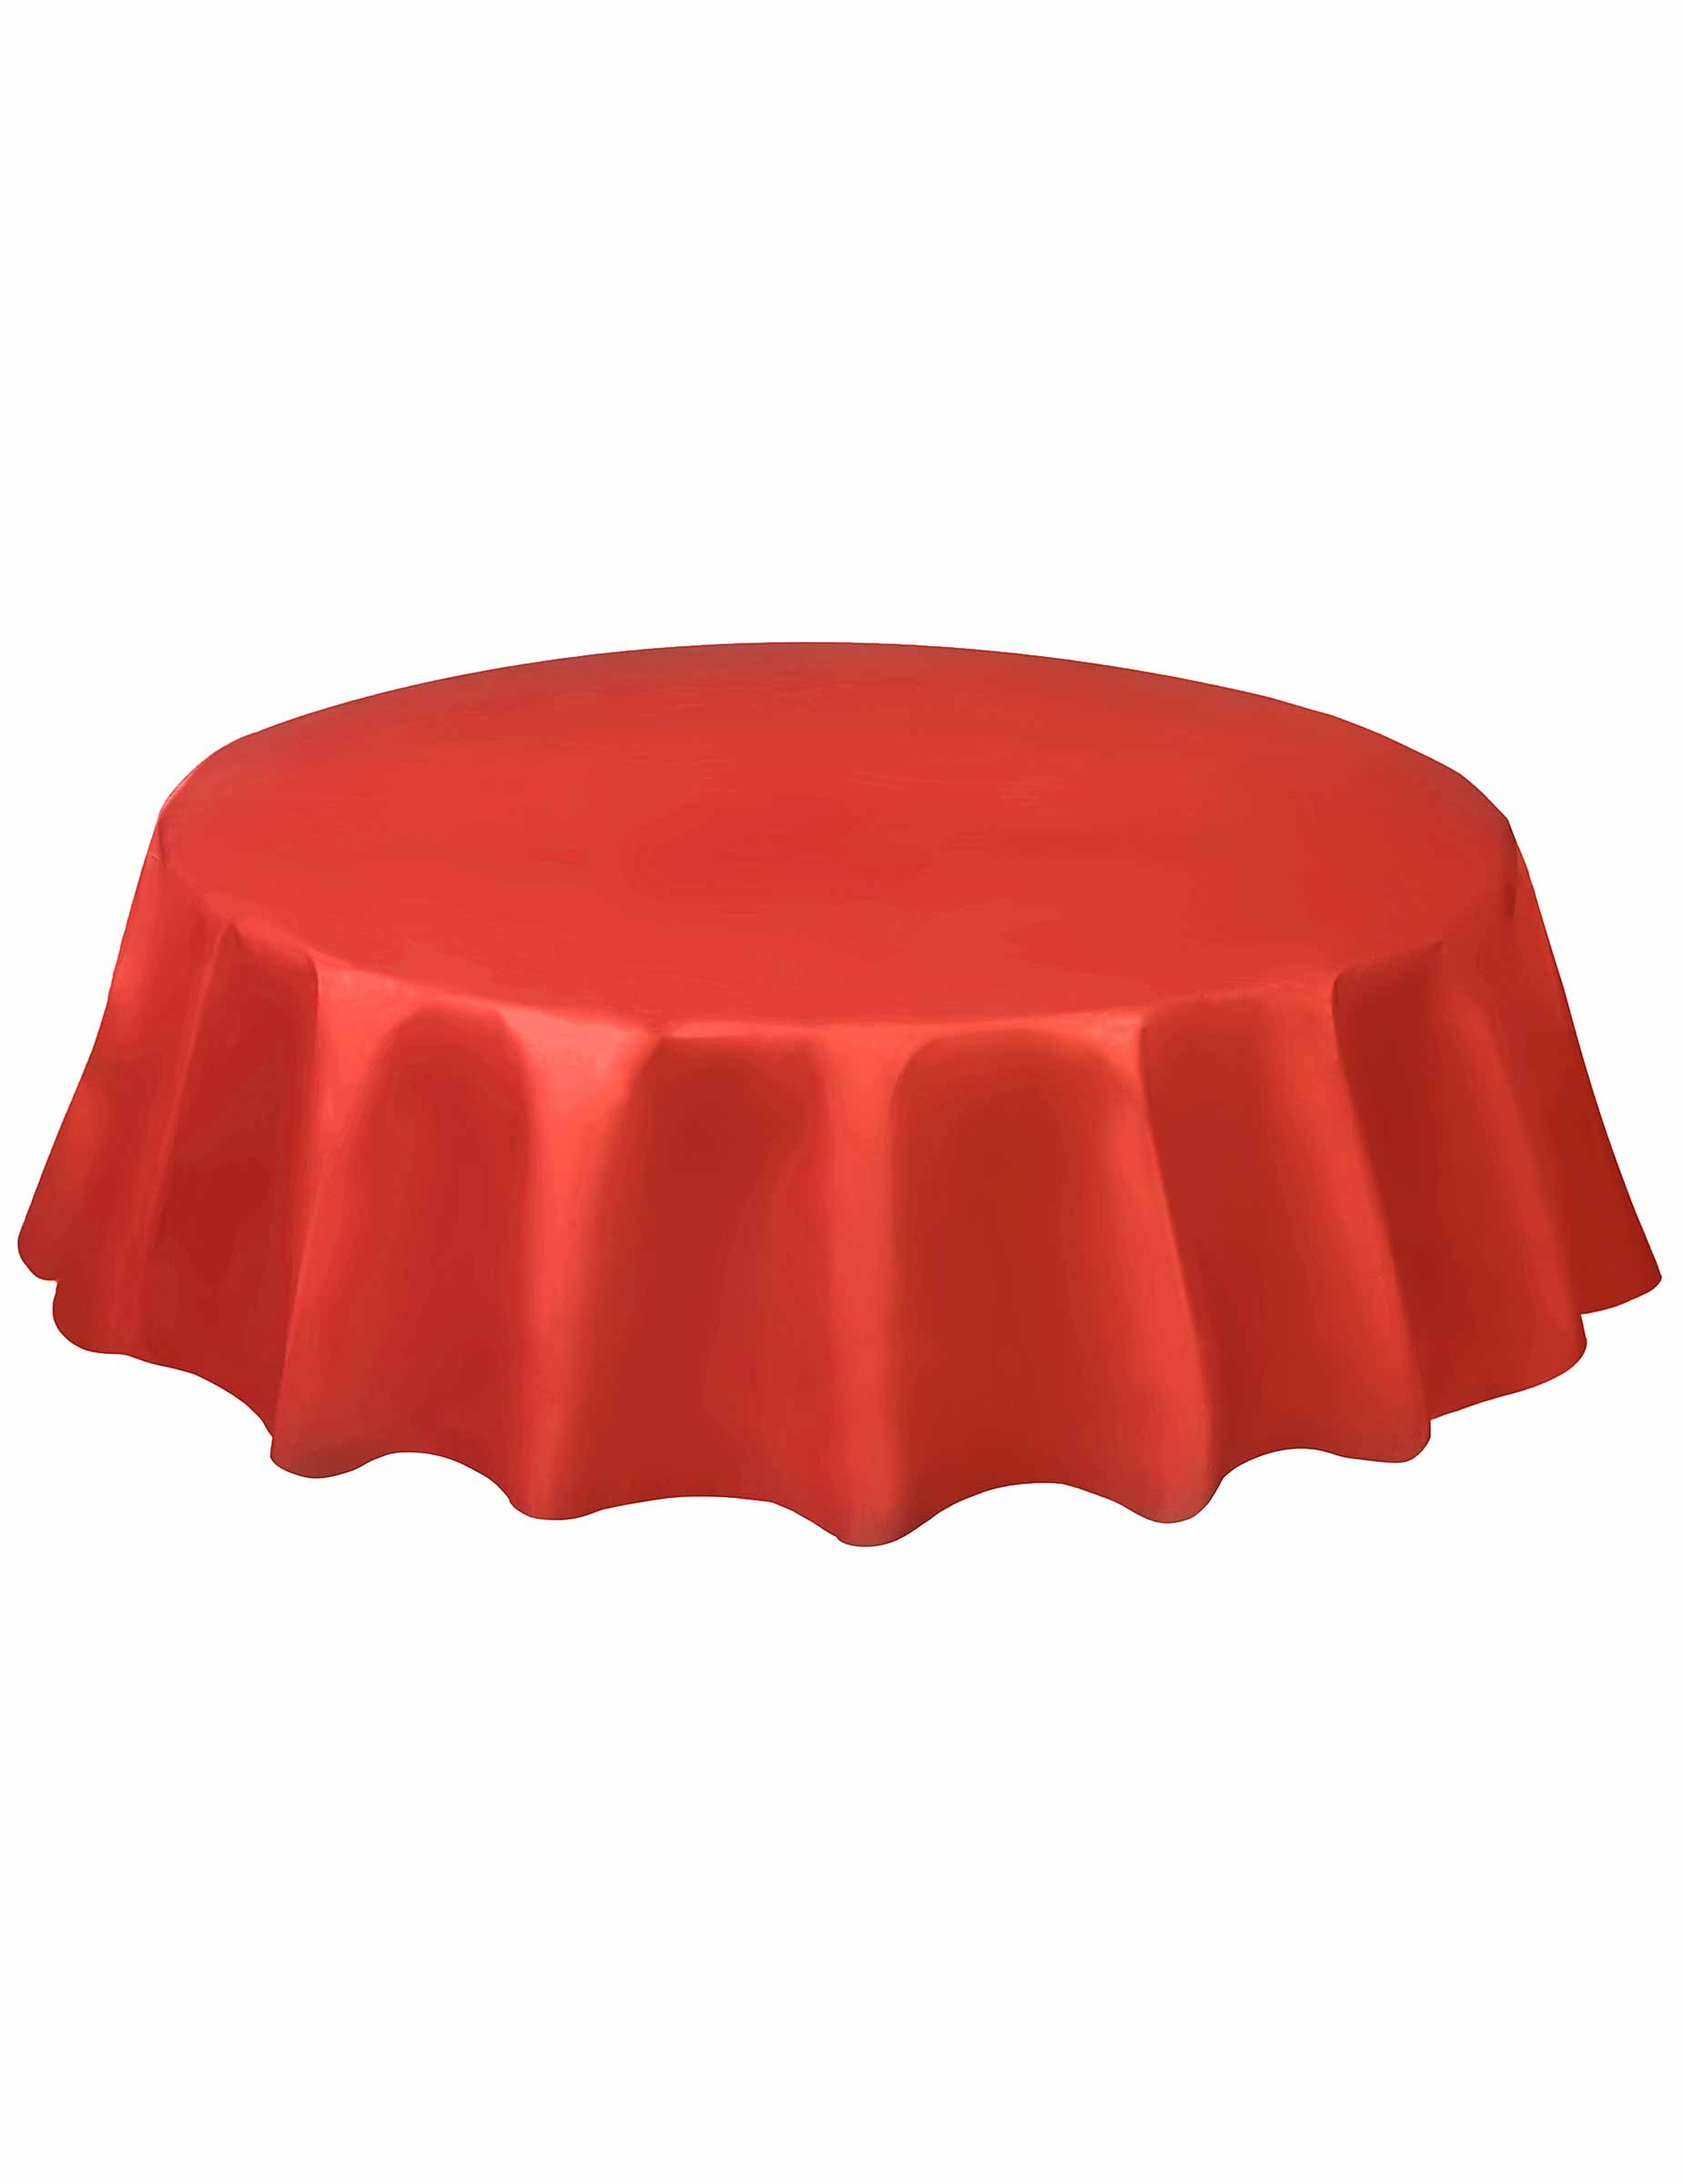 nappe jetable ronde en plastique rouge d coration anniversaire et f tes th me sur vegaoo party. Black Bedroom Furniture Sets. Home Design Ideas